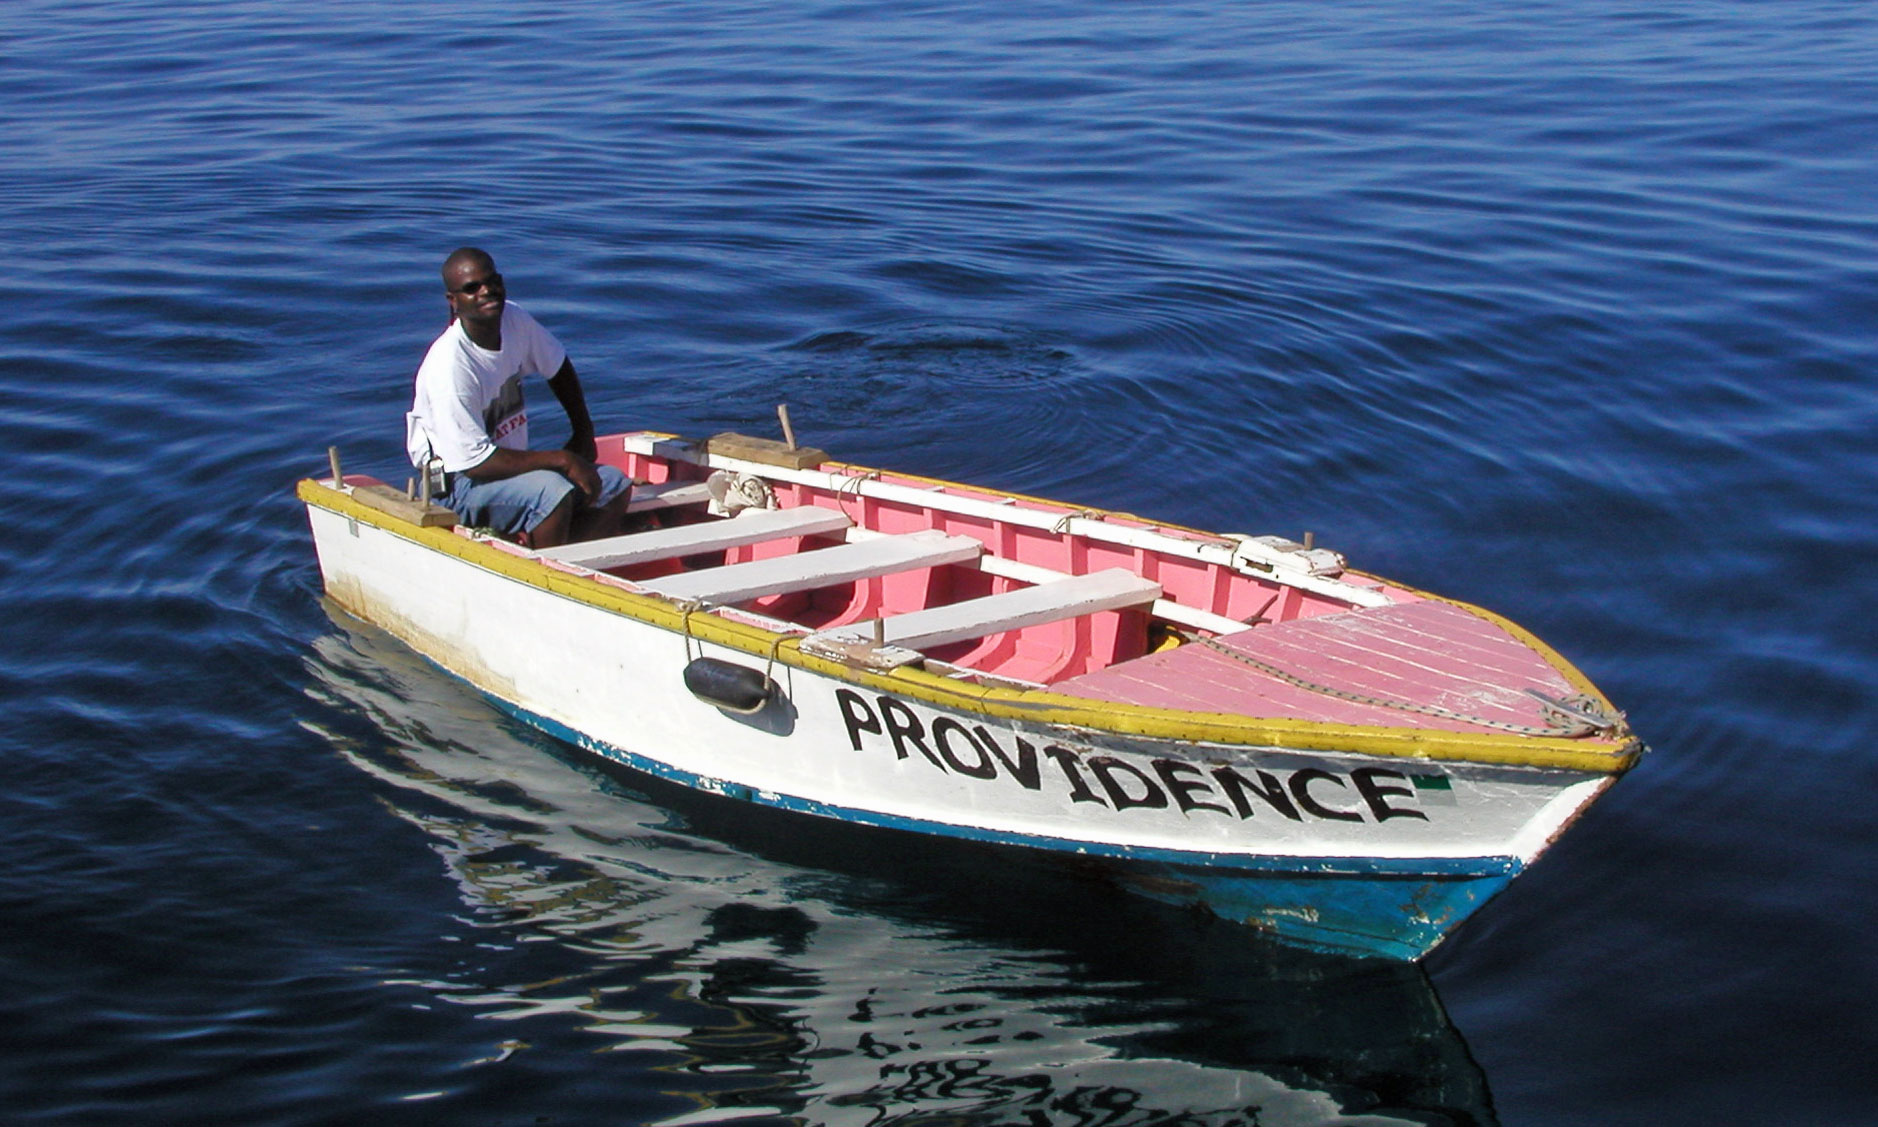 Martin Carriere and his boat 'Providence'